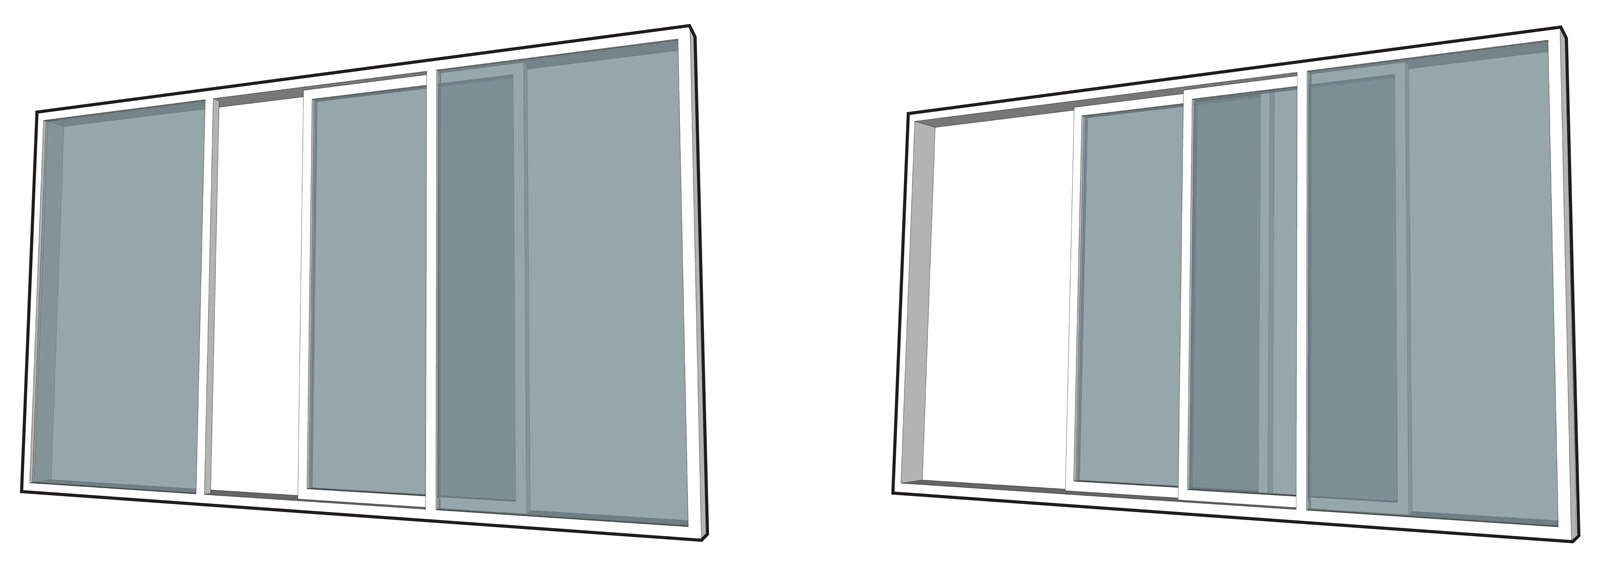 BUILD-LLC-diagram-moving-glass-walls